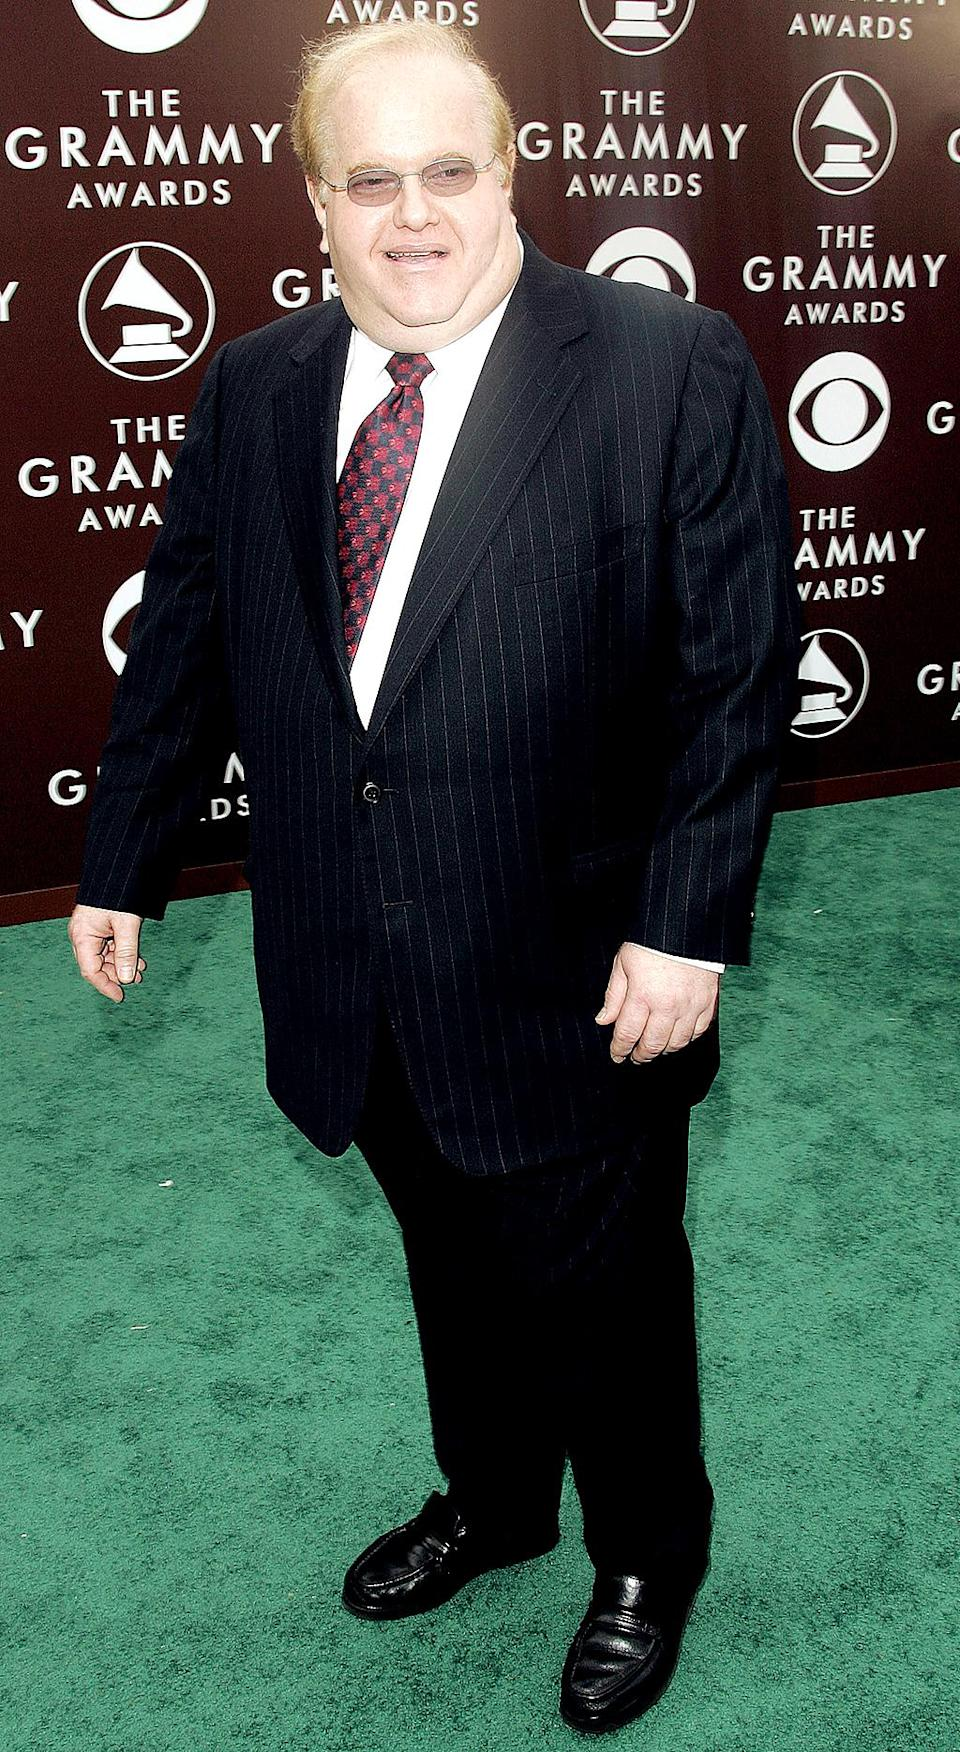 Lou Pearlman was the disgraced manager of successful 1990s boy bands Backstreet Boys, *NSYNC, O-Town, and LFO. In 2008, he went to jail for running one of the largest and longest-running Ponzi schemes in history, leaving more than $300 million in debts. He died of cardiac arrest on Aug. 19 while serving a 25-year prison sentence. He was 62. (Photo: Dan MacMedan/WireImage for The Recording Academy)